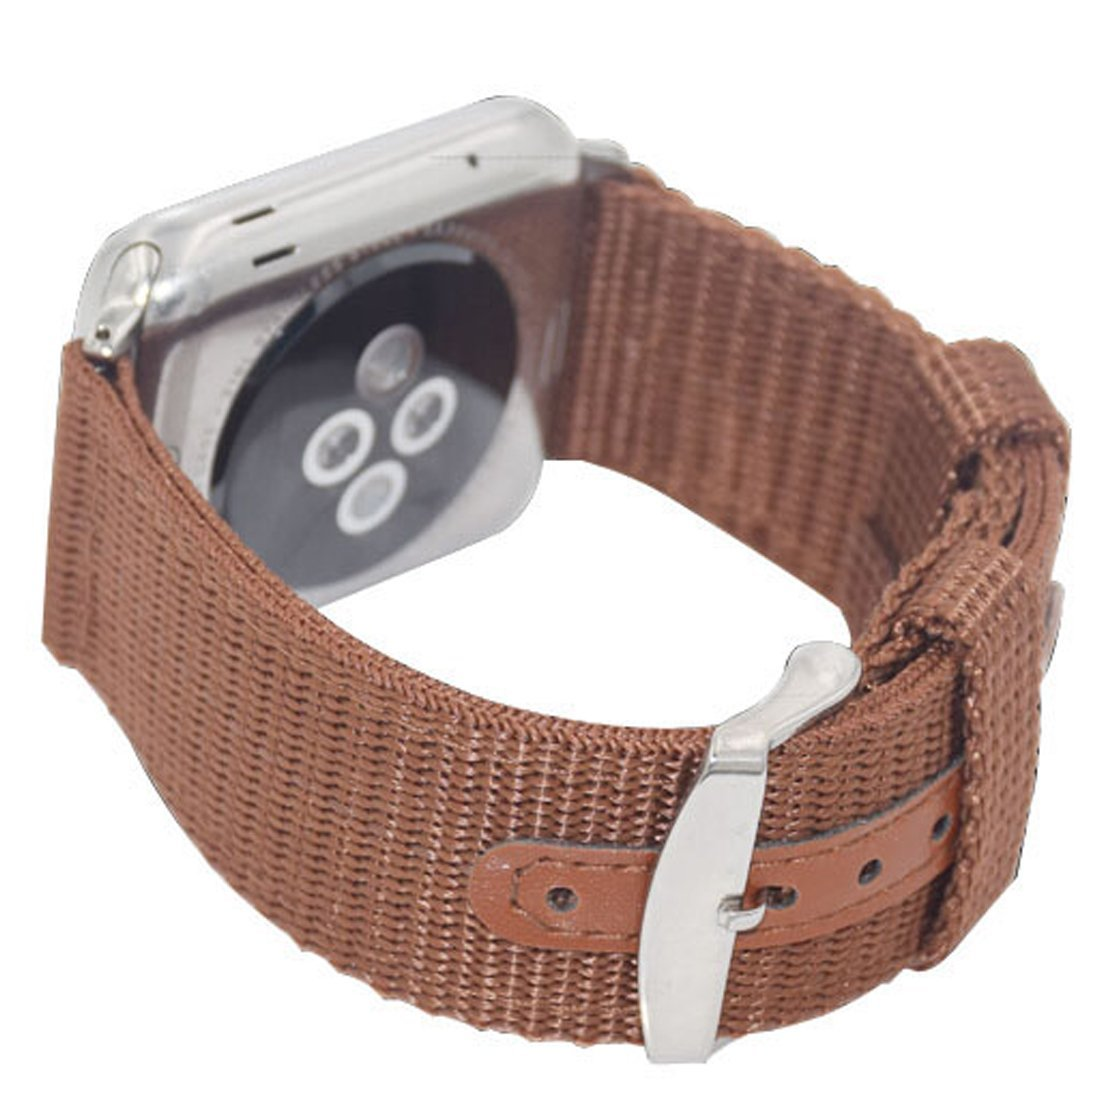 Woven Nylon, iitee[TM] Canvas Fabric Sport Edition Soft Replacement Watch Band Straps for Apple Watch iWatch with Metal Clasp and Connector (38mm brown)